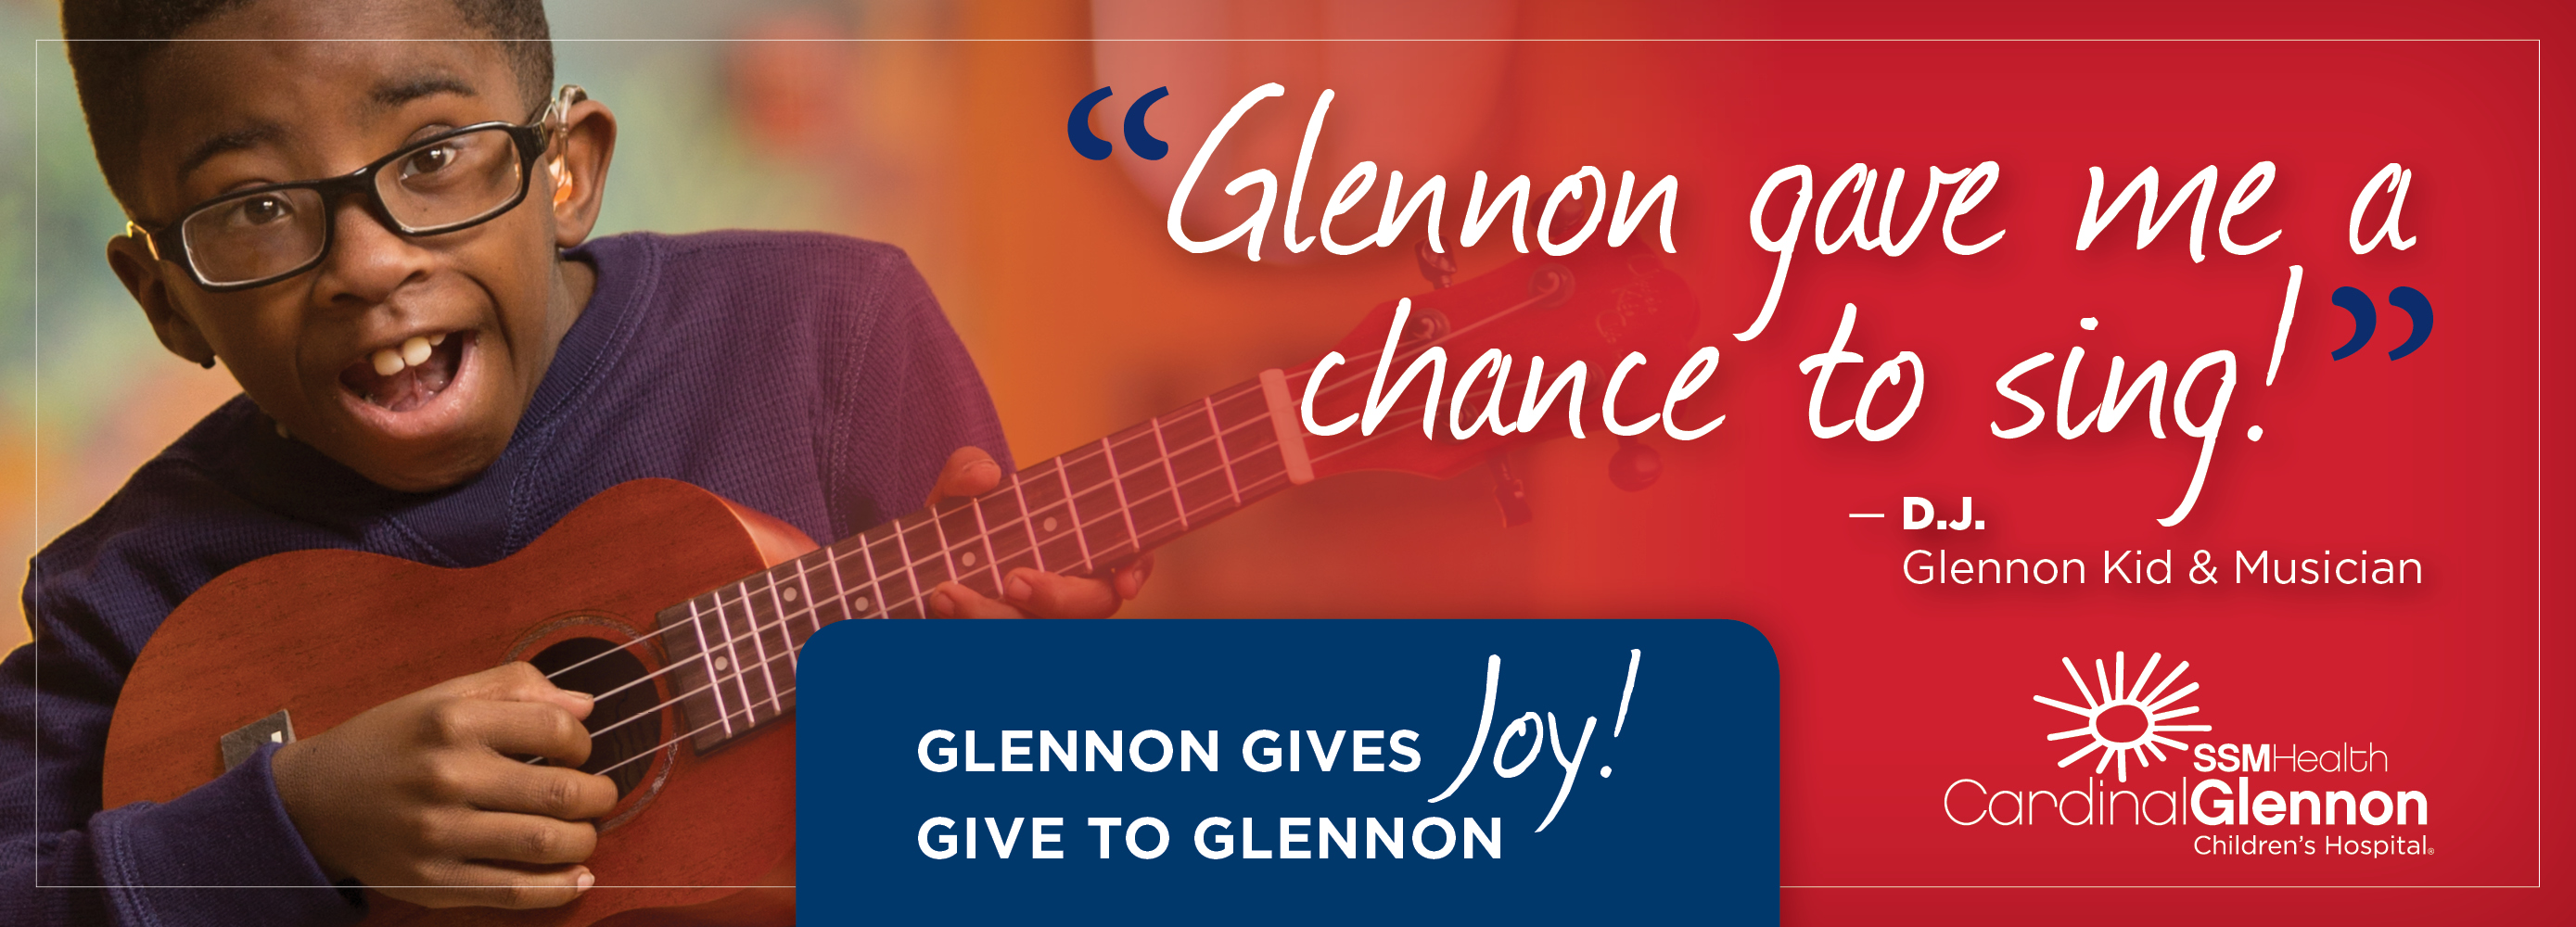 """Glennon gave me the chance to say """"I Do!"""" - Joey Renick"""